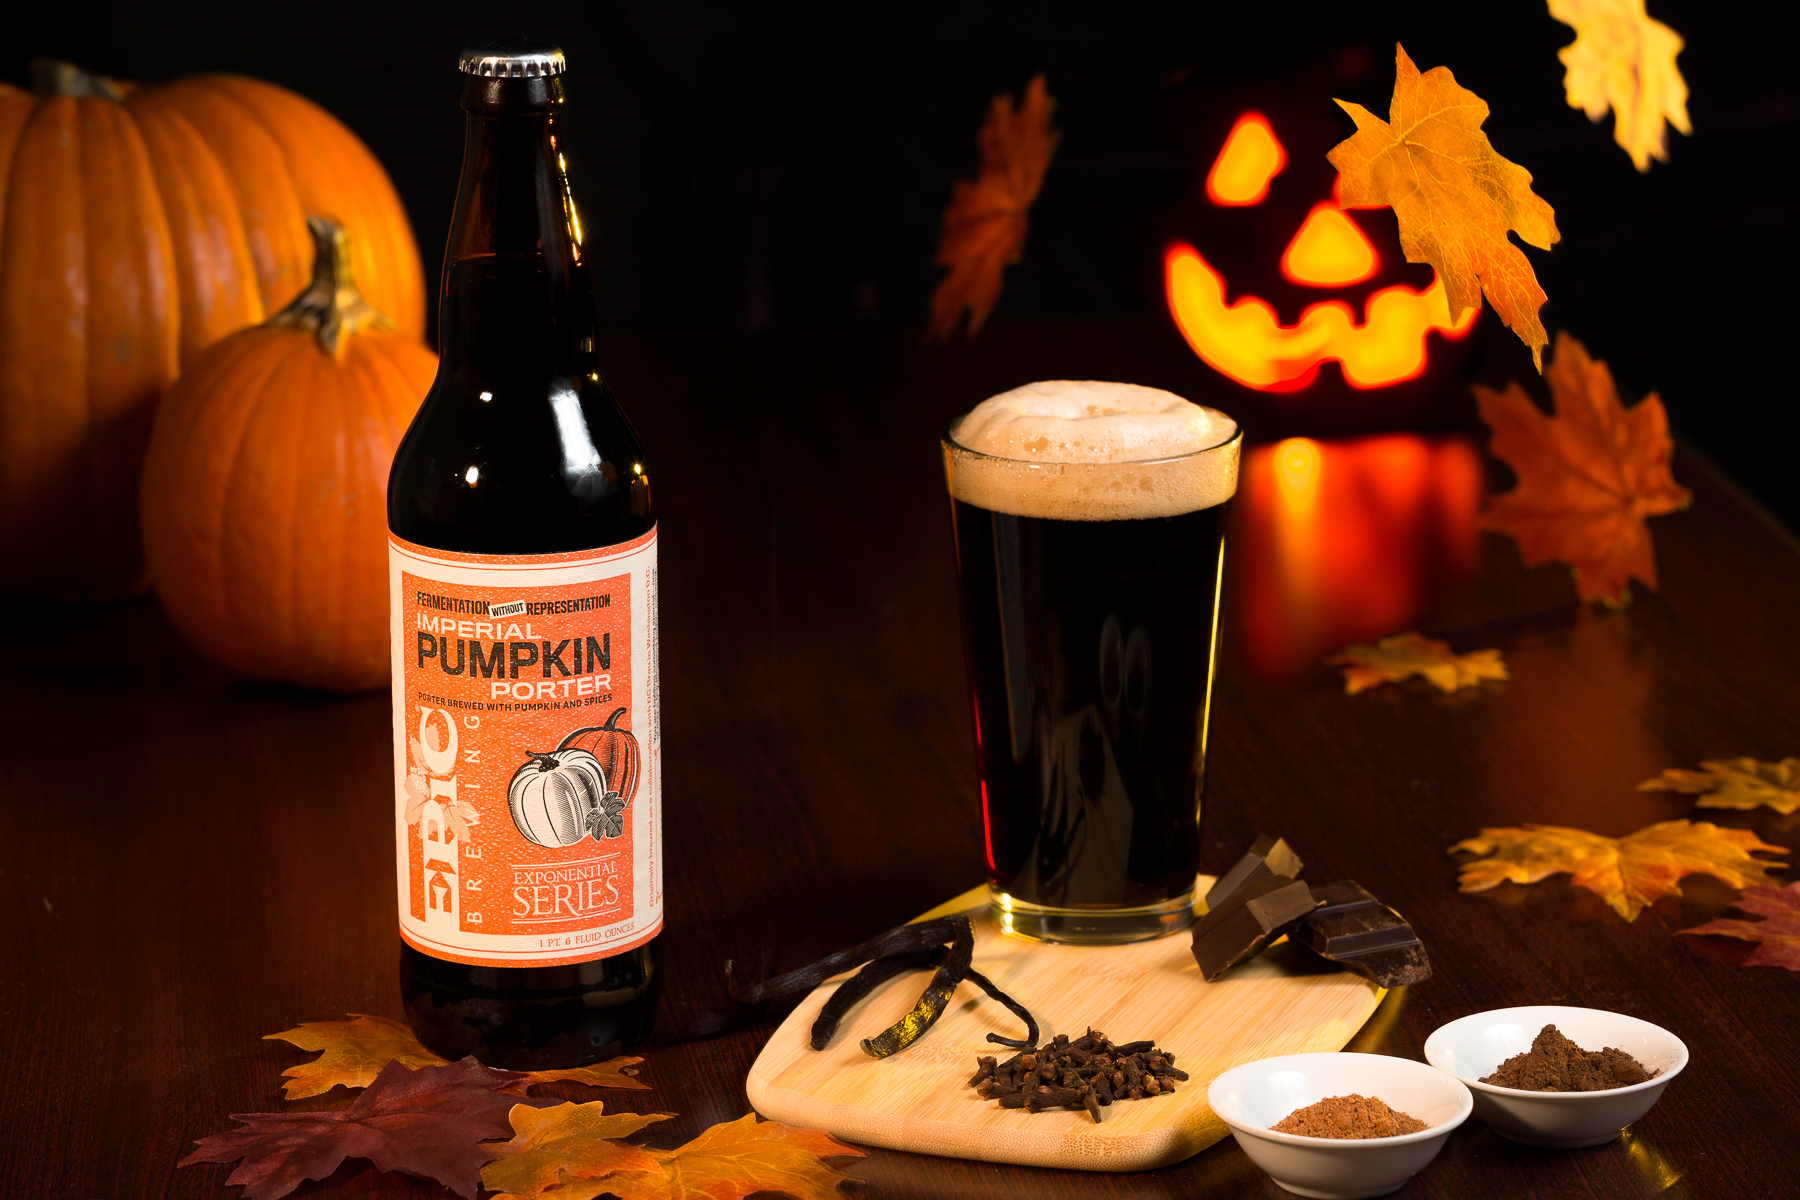 Fall-themed photos of epic brewing imperial pumpkin porter